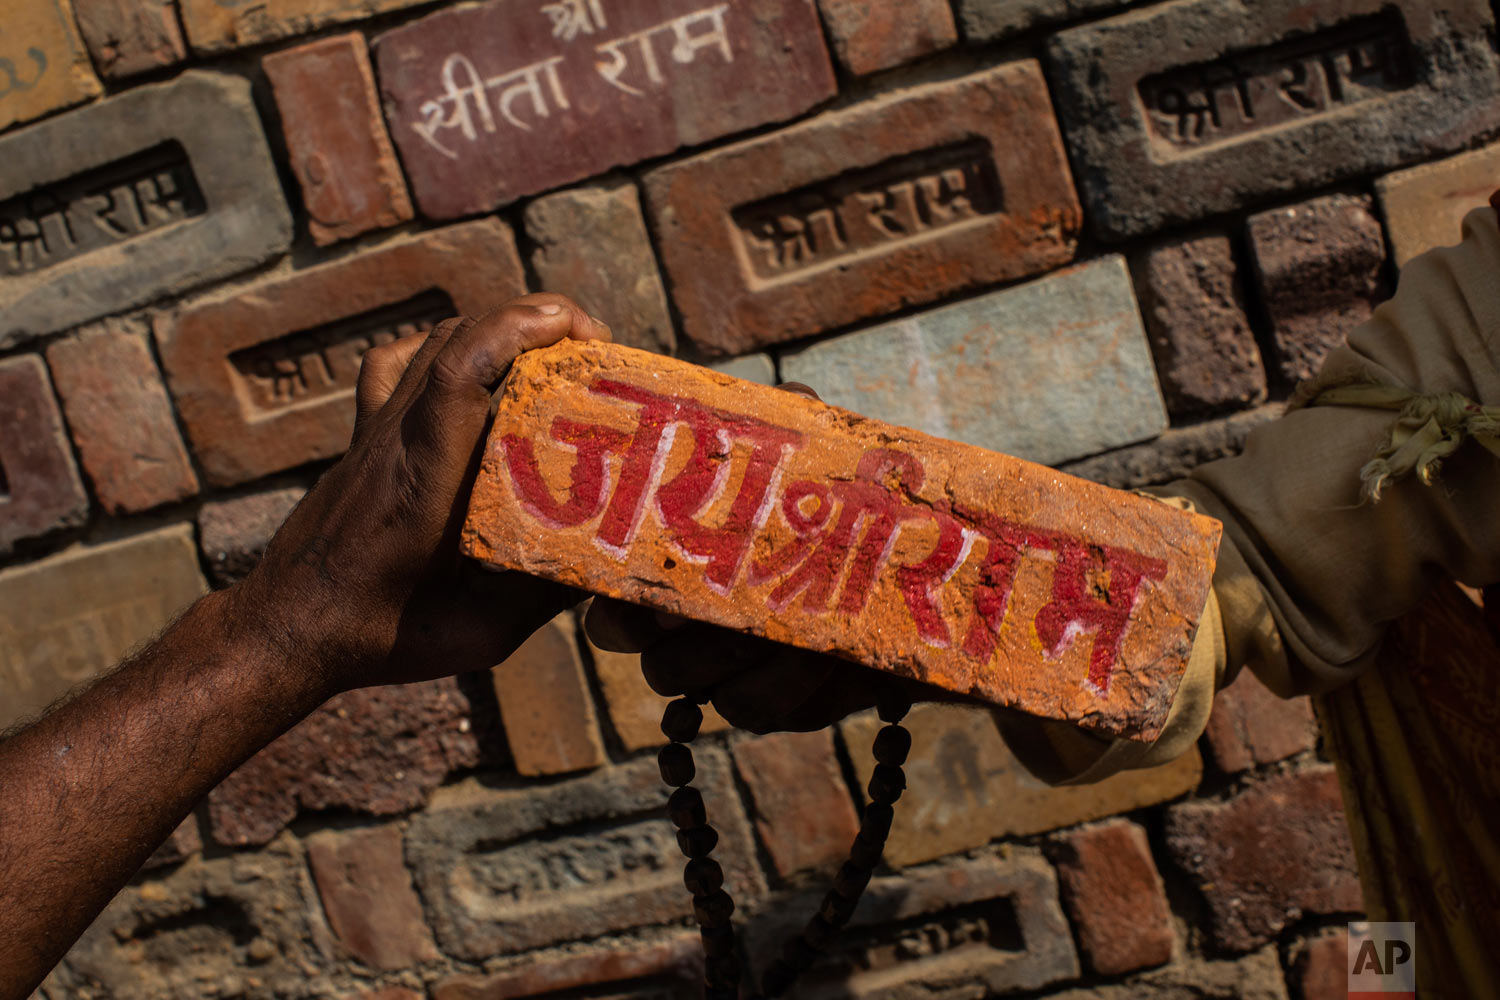 "A man holds a brick reading ""Jai Shree Ram"" (Victory to Lord Ram) as bricks of the old Babri Mosque are piled up in Ayodhya Uttar Pradesh, India, Nov. 25, 2018. (AP Photo/Bernat Armangue)"